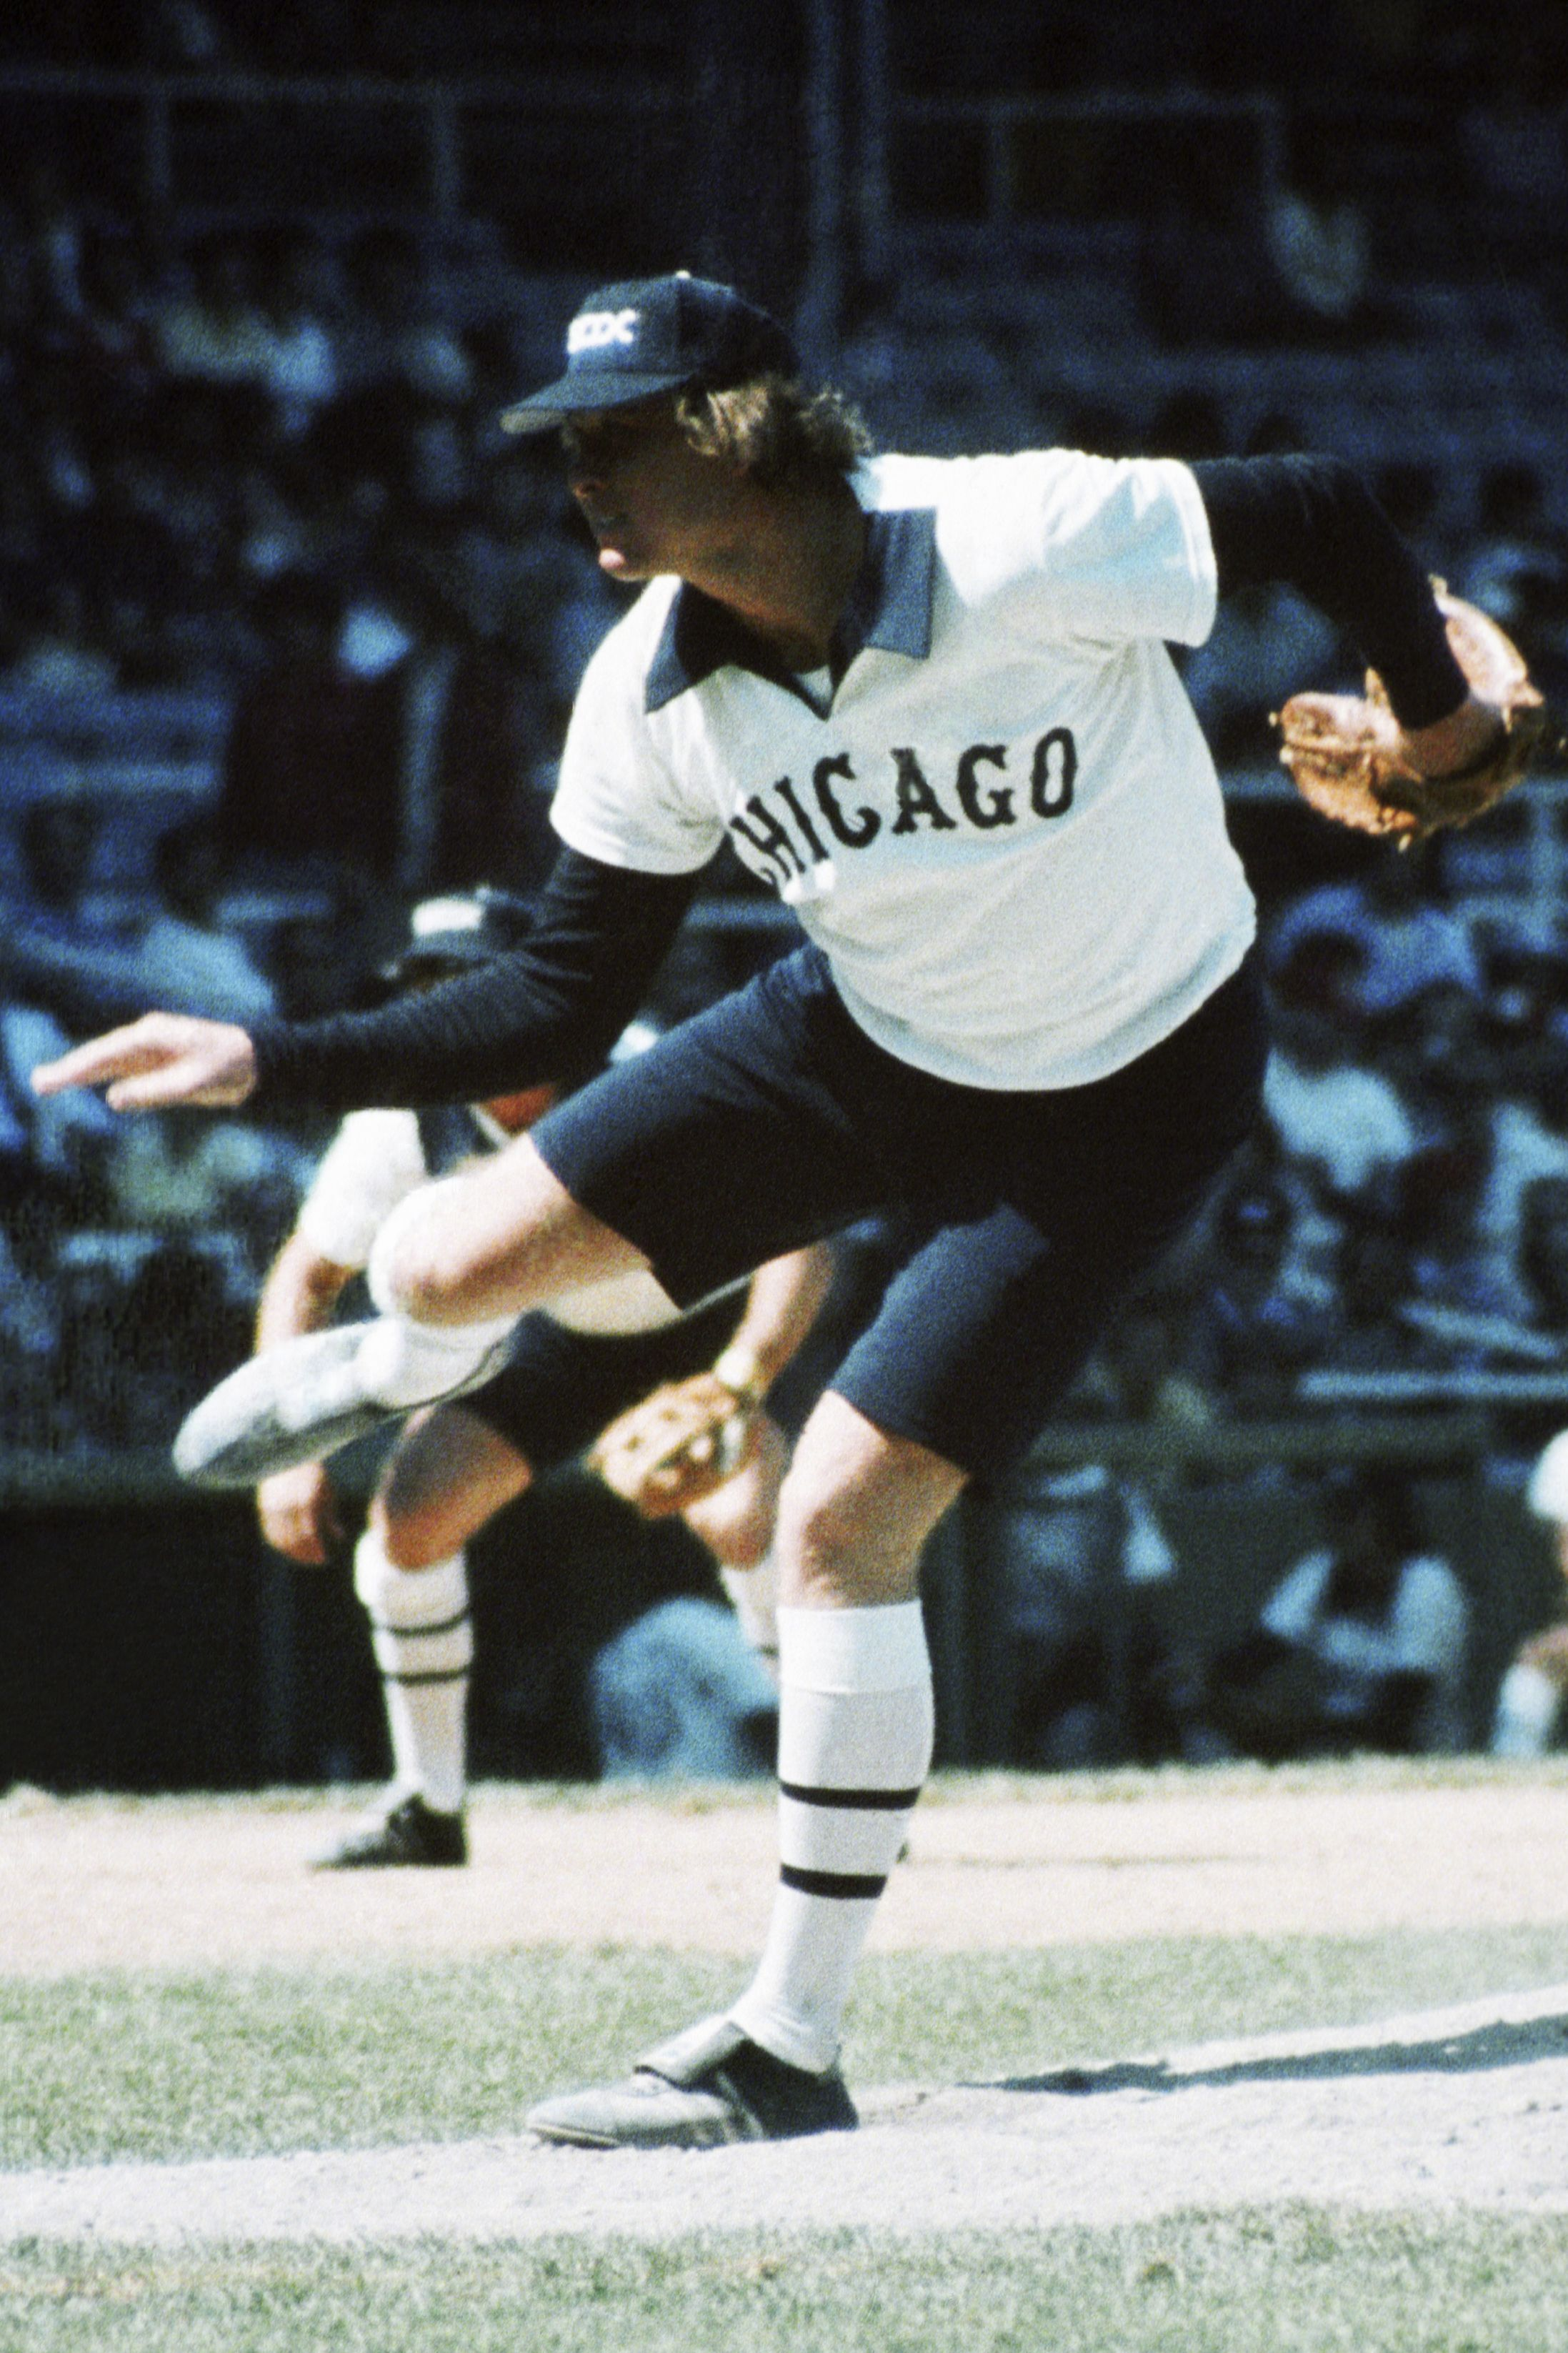 Best and Worst Baseball Uniforms - History's Best and Worst